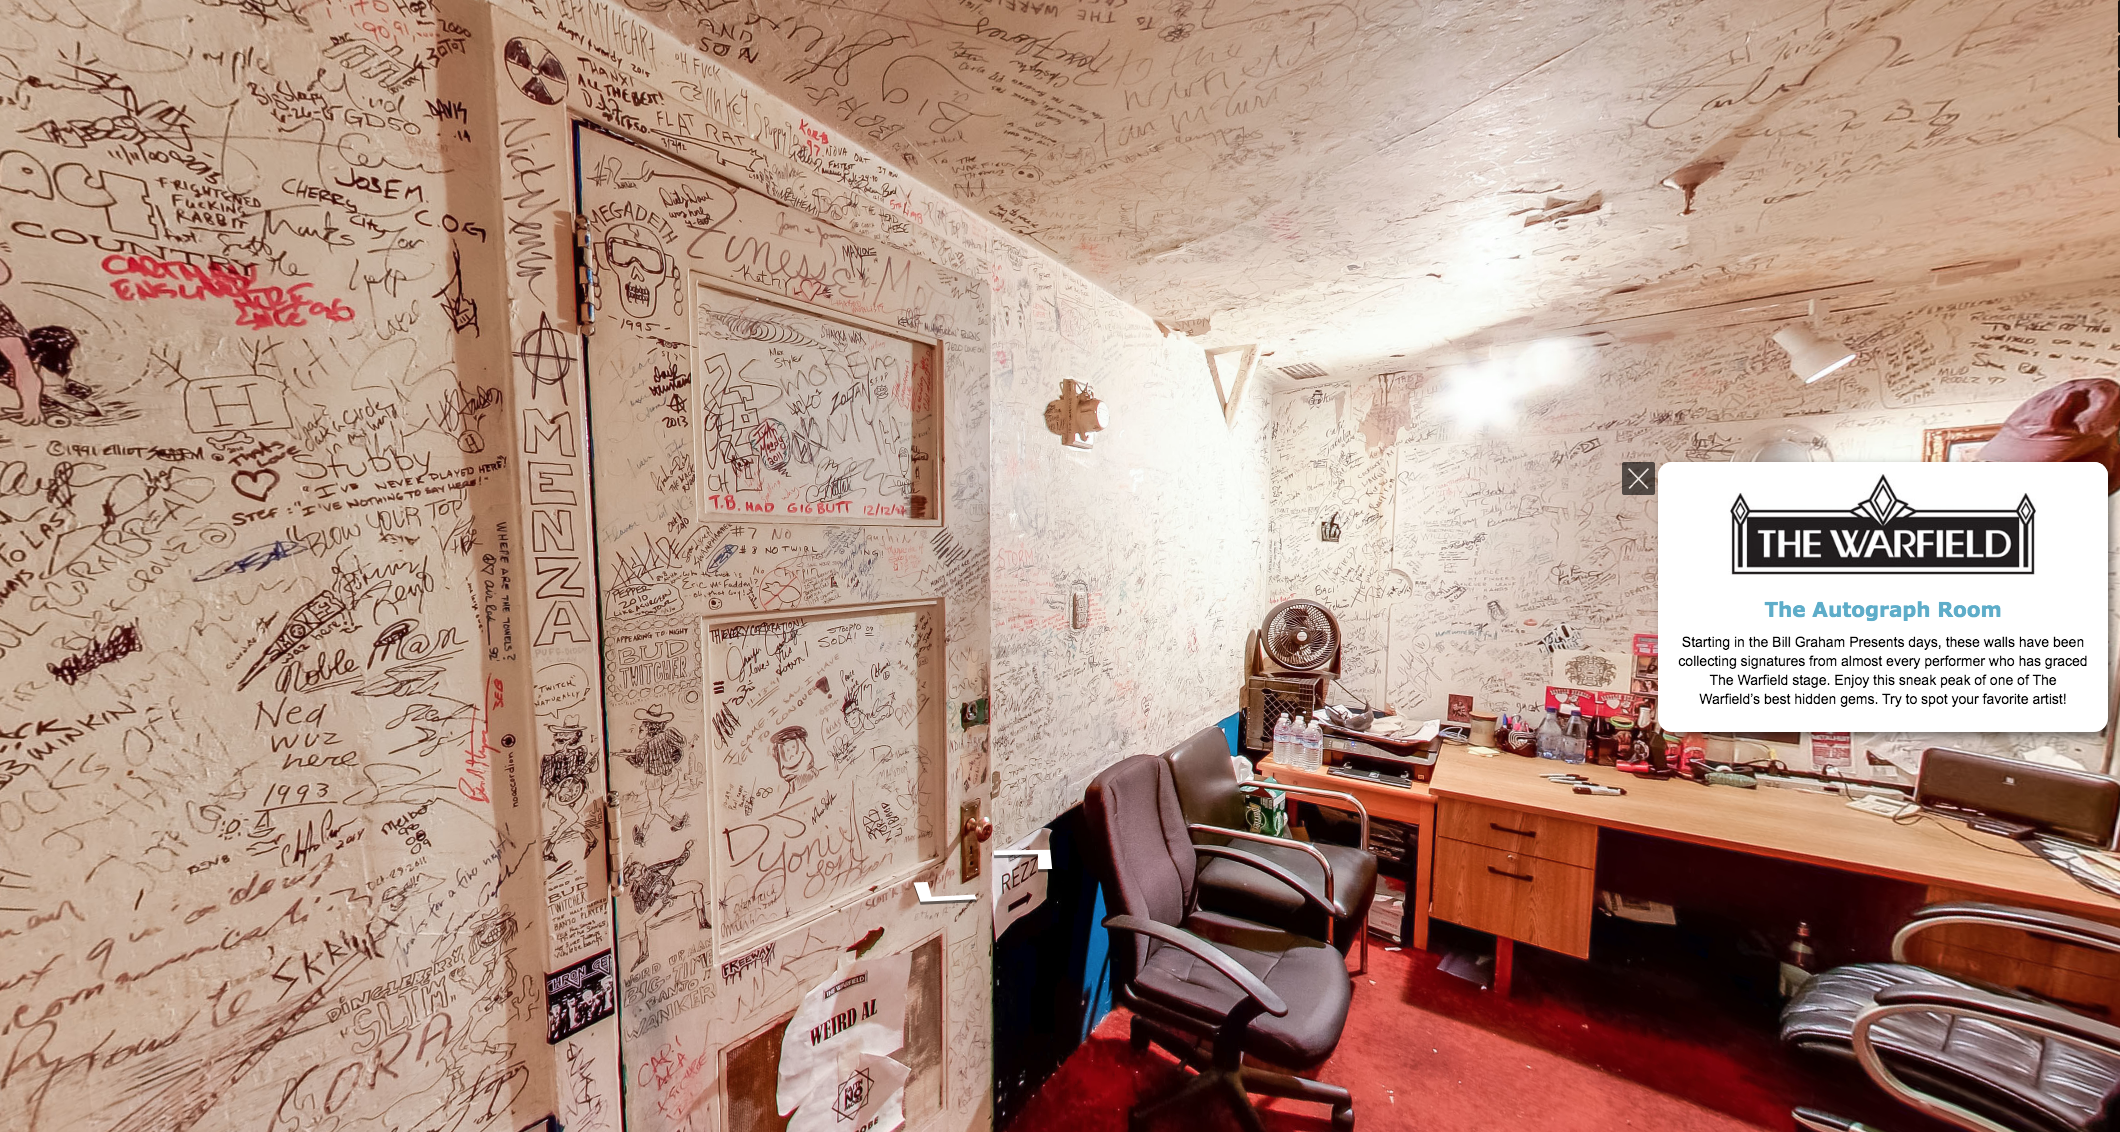 Warfield Autograph Room